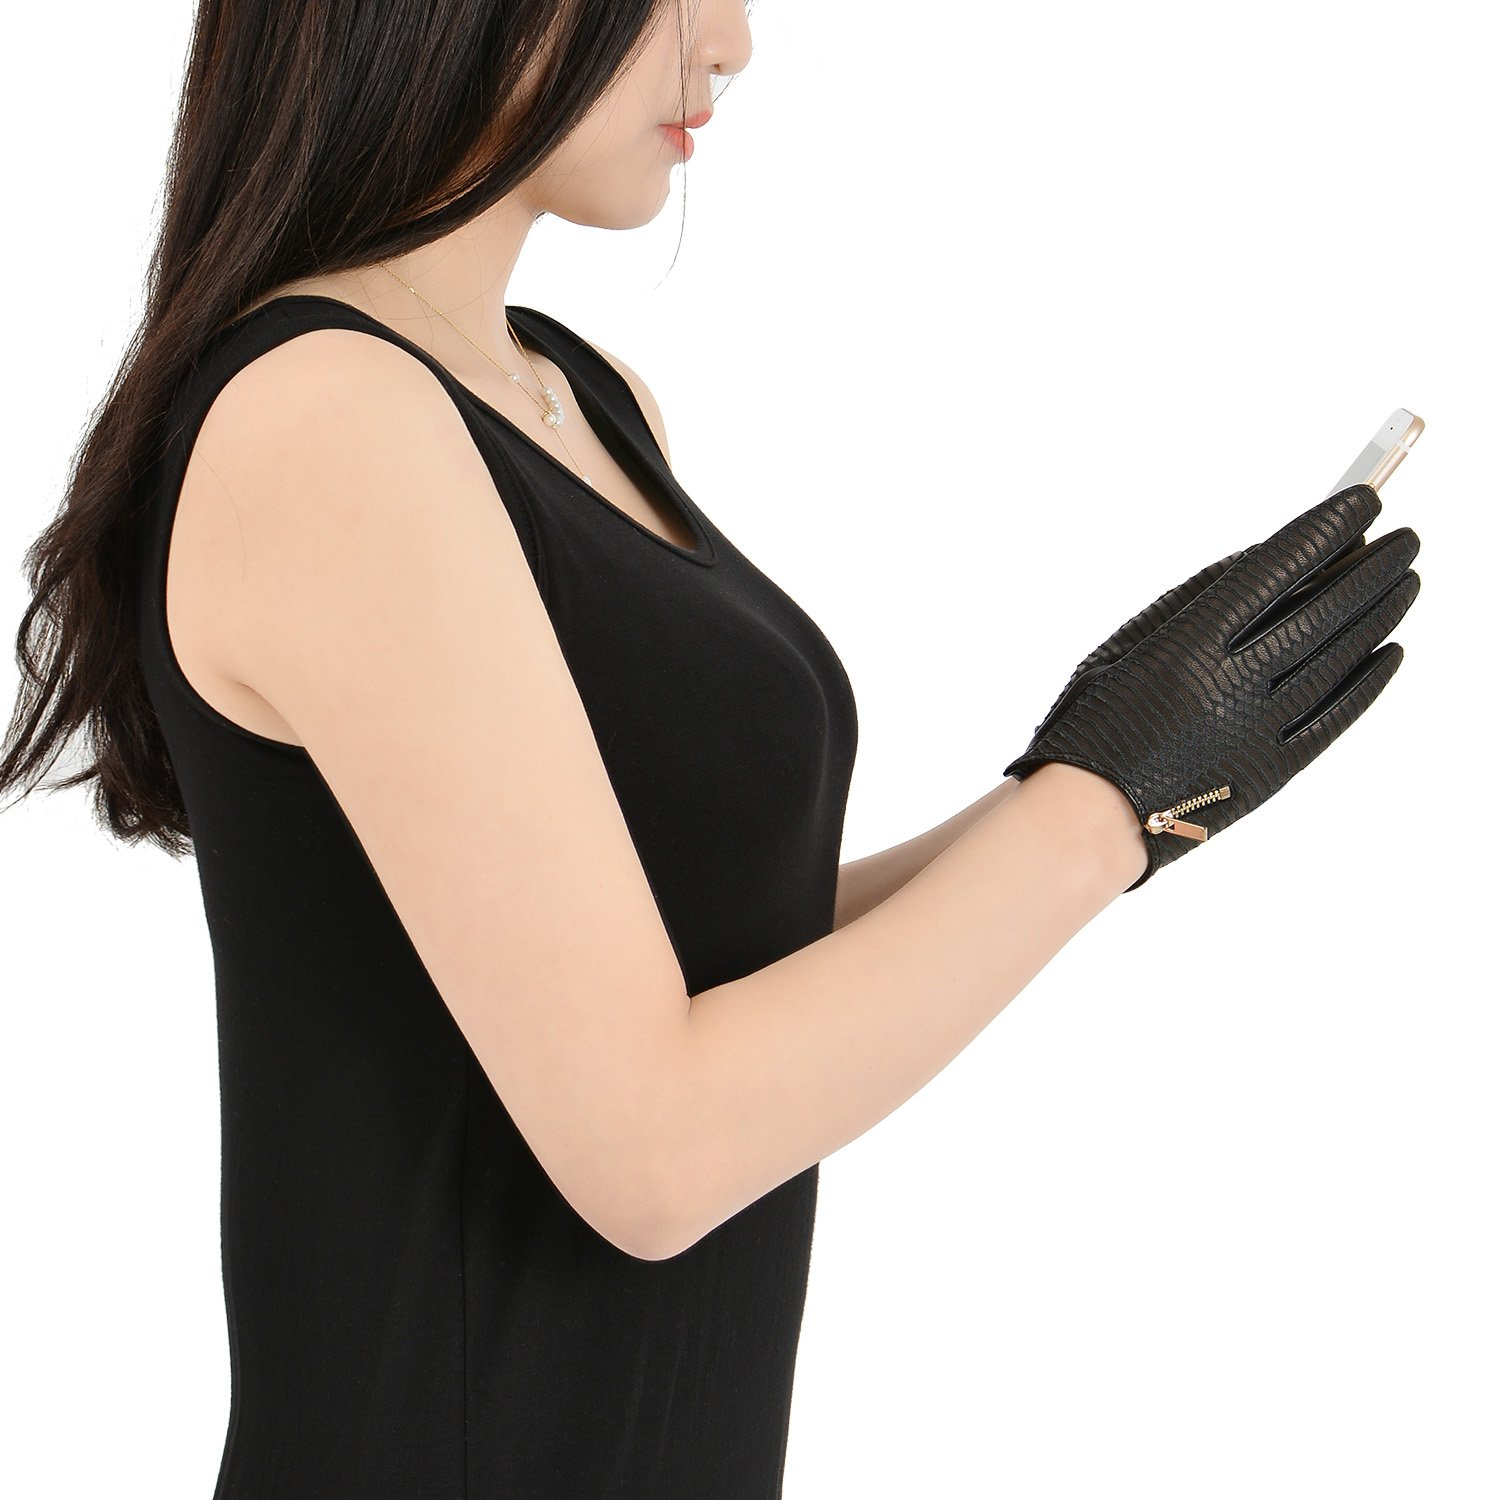 Fioretto Women Leather Gloves Touchscreen Sexy Goatskin Leather Gloves Driving Gloves Motorcycle Gloves with Metal Zipper Black M